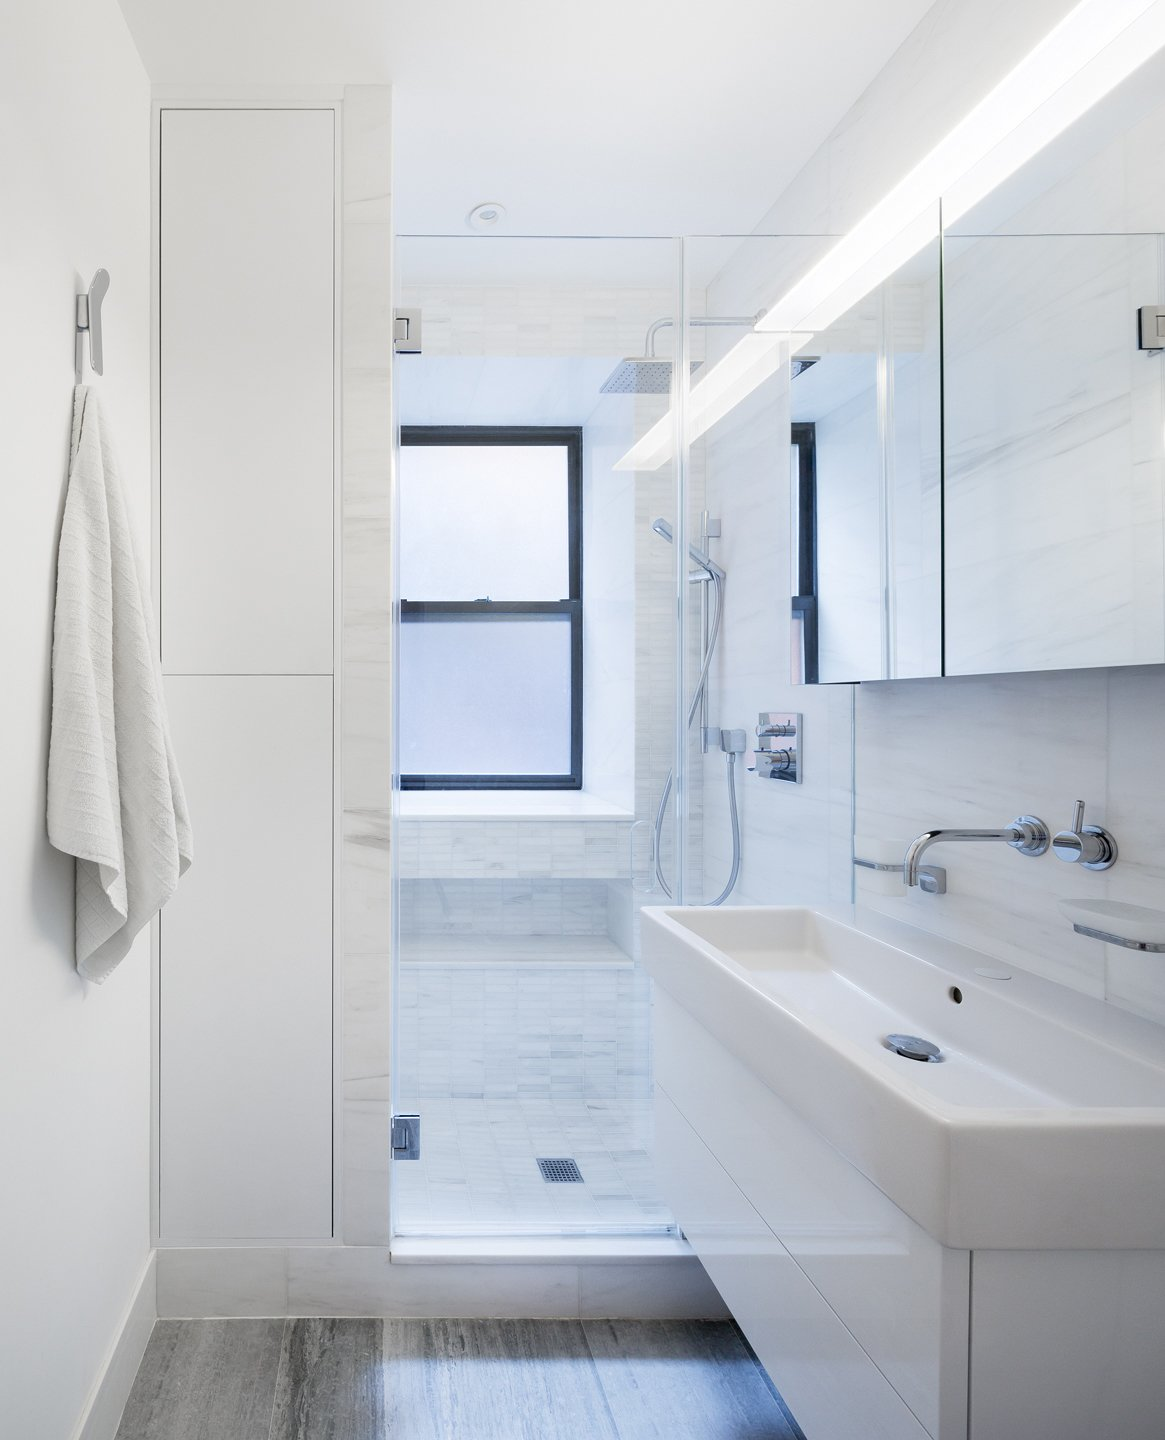 A wall mounted vanity,  glass enclosed shower and built in cabinets seek to maximizes the feeling of space within a very tight footprint.